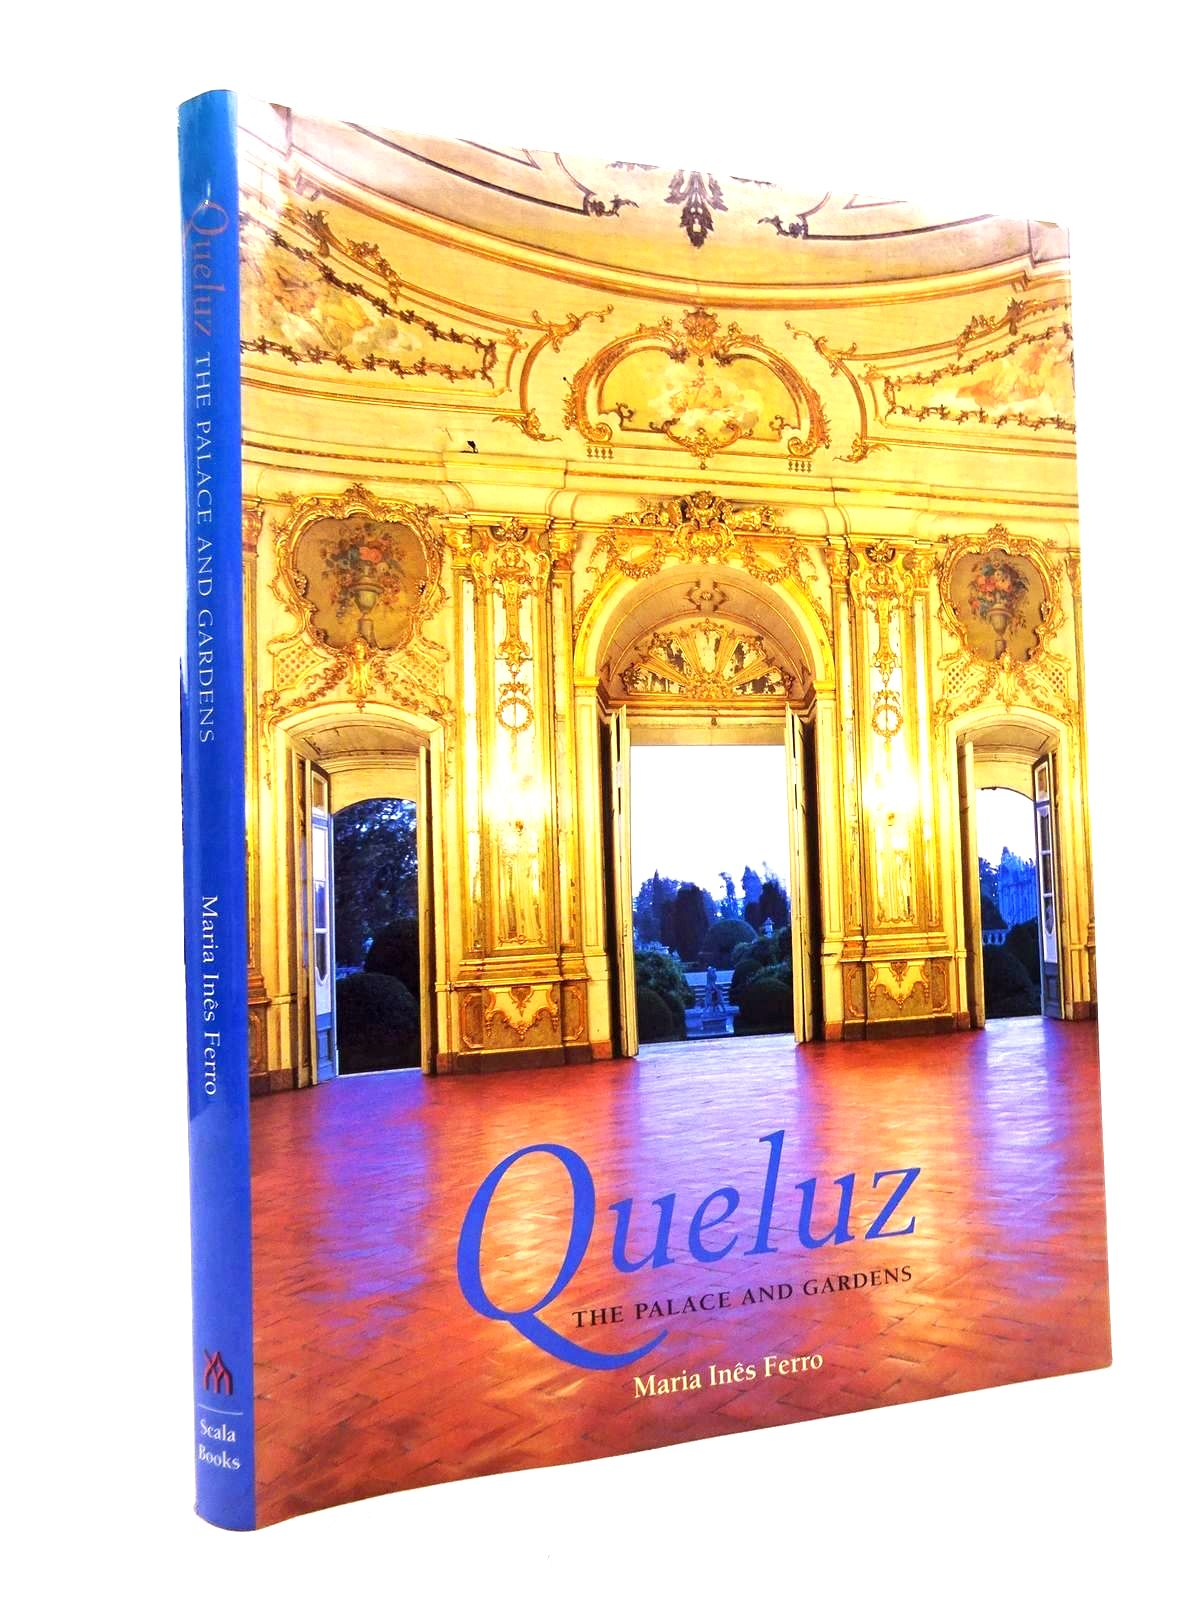 Photo of QUELUZ: THE PALACE AND GARDENS written by Ferro, Maria Ines published by Scala Books (STOCK CODE: 1816314)  for sale by Stella & Rose's Books